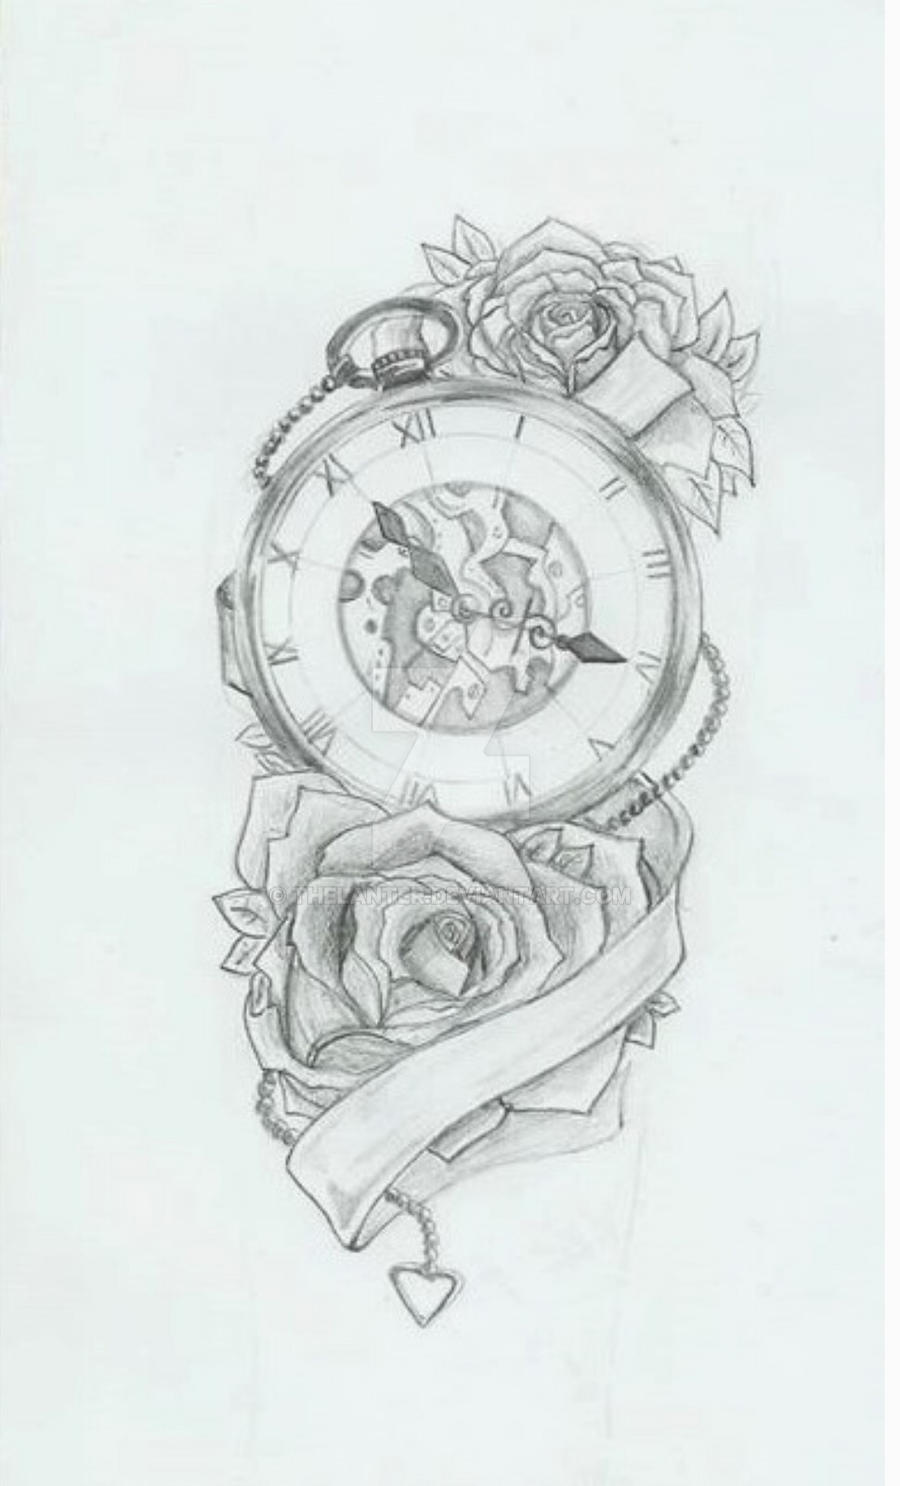 Rose Clock Tattoo Designs Drawing: Clock N' Roses By TheLanter On DeviantArt